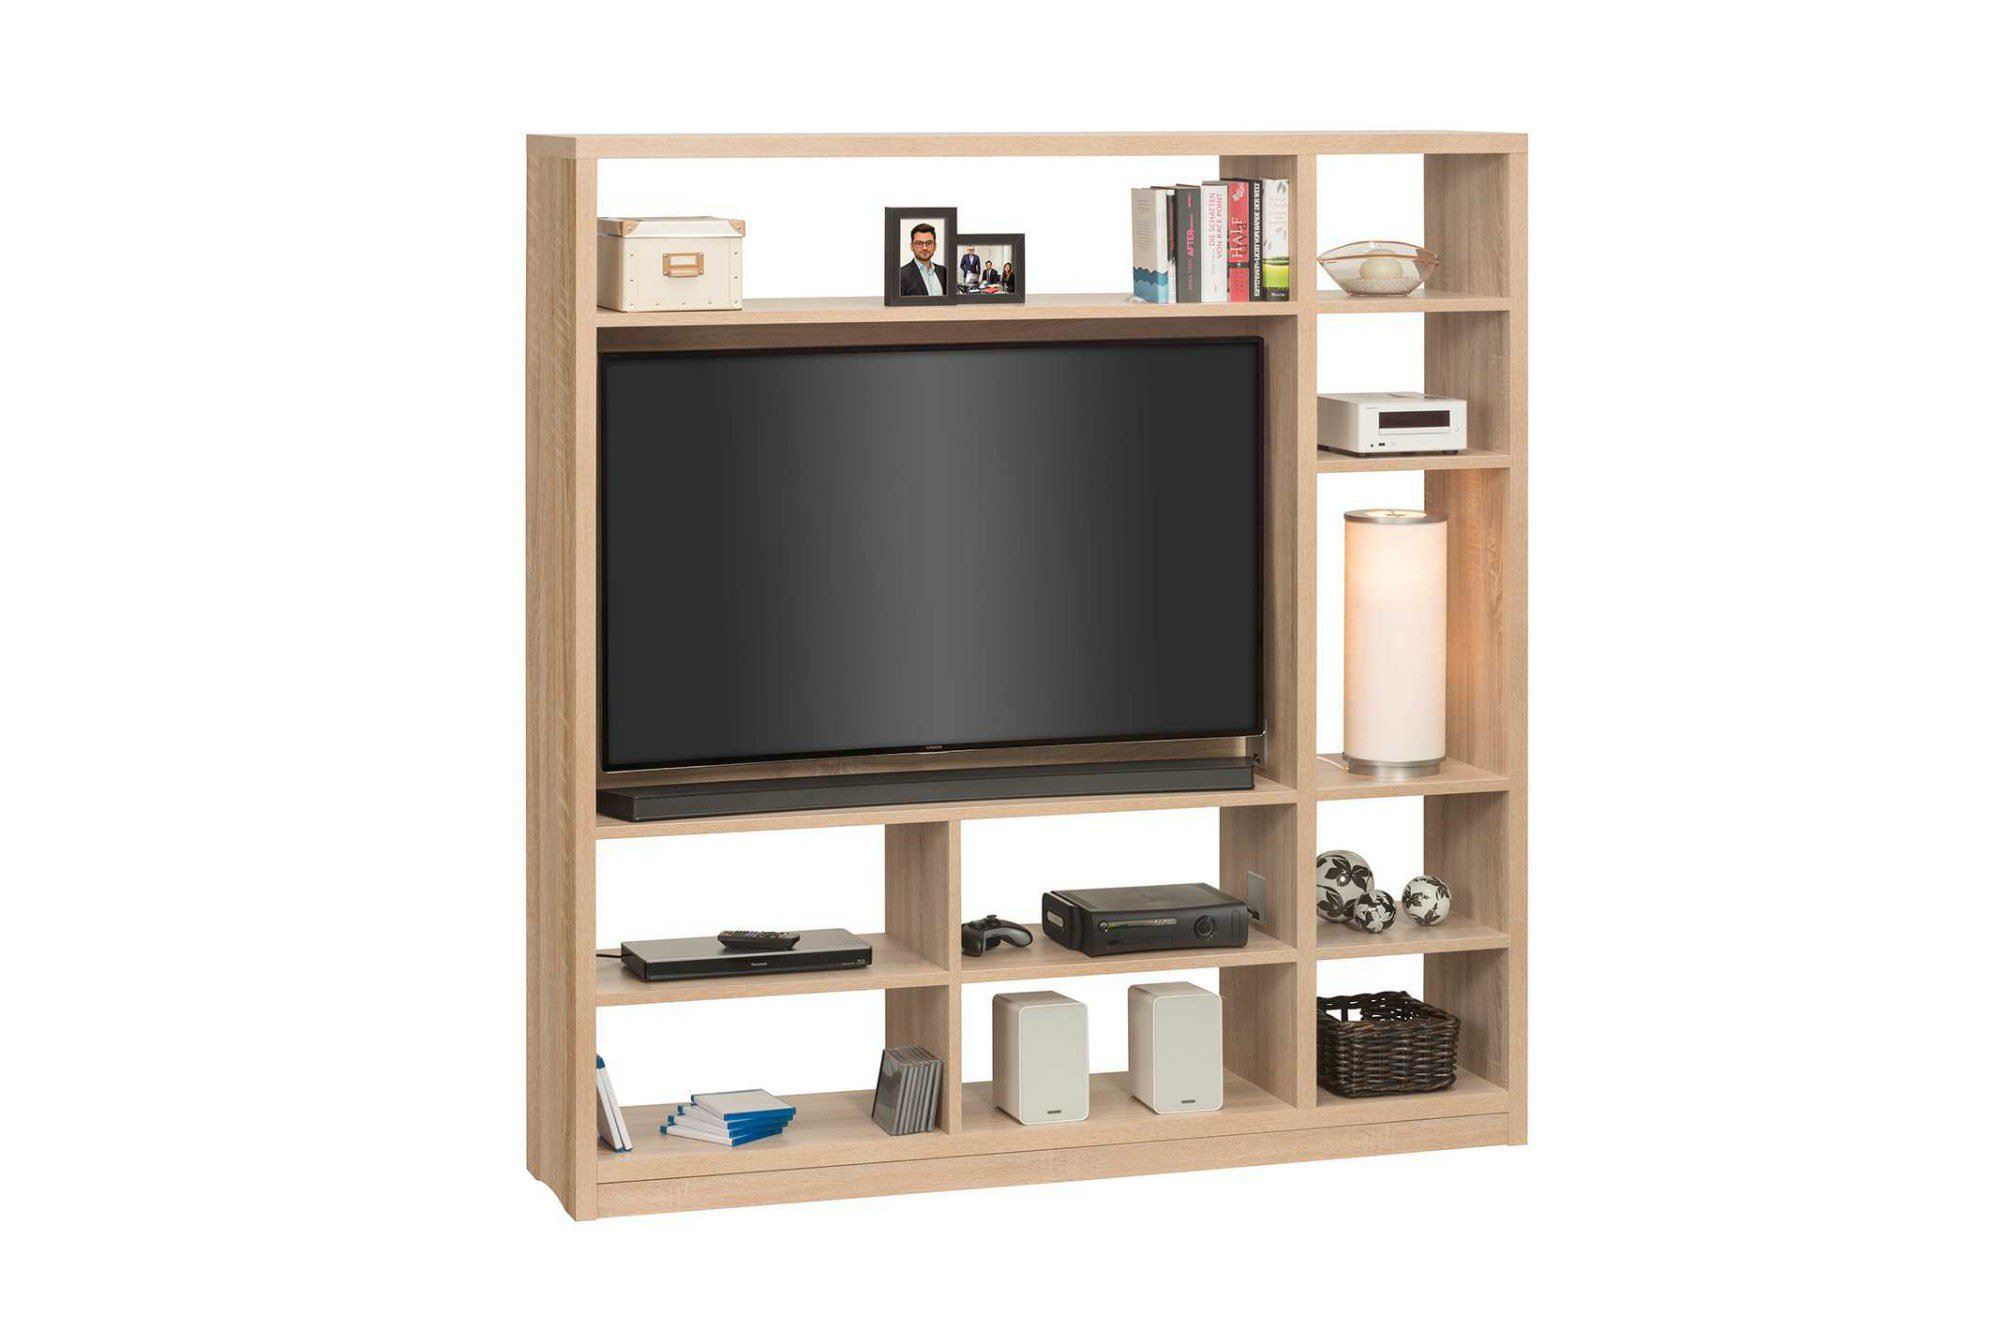 maja m bel raumteiler cableboard mit tv halterung m bel letz ihr online shop. Black Bedroom Furniture Sets. Home Design Ideas